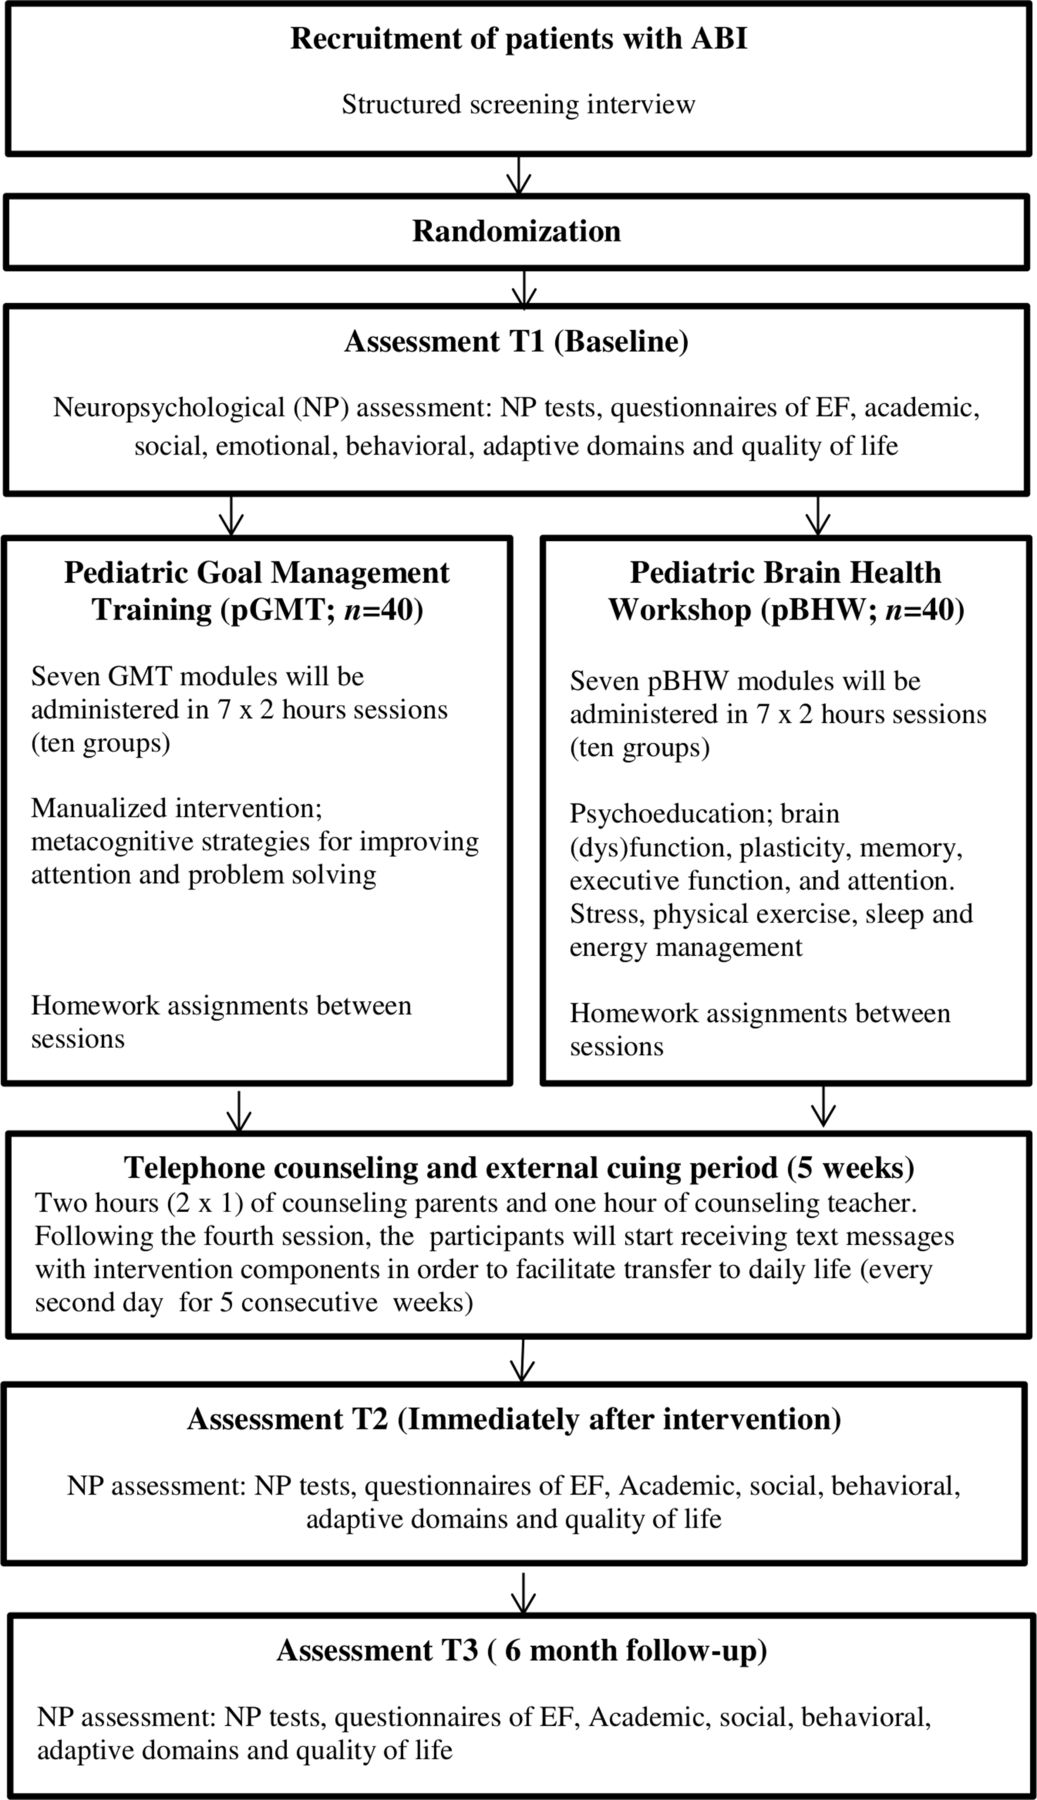 Paediatric goal management training in patients with